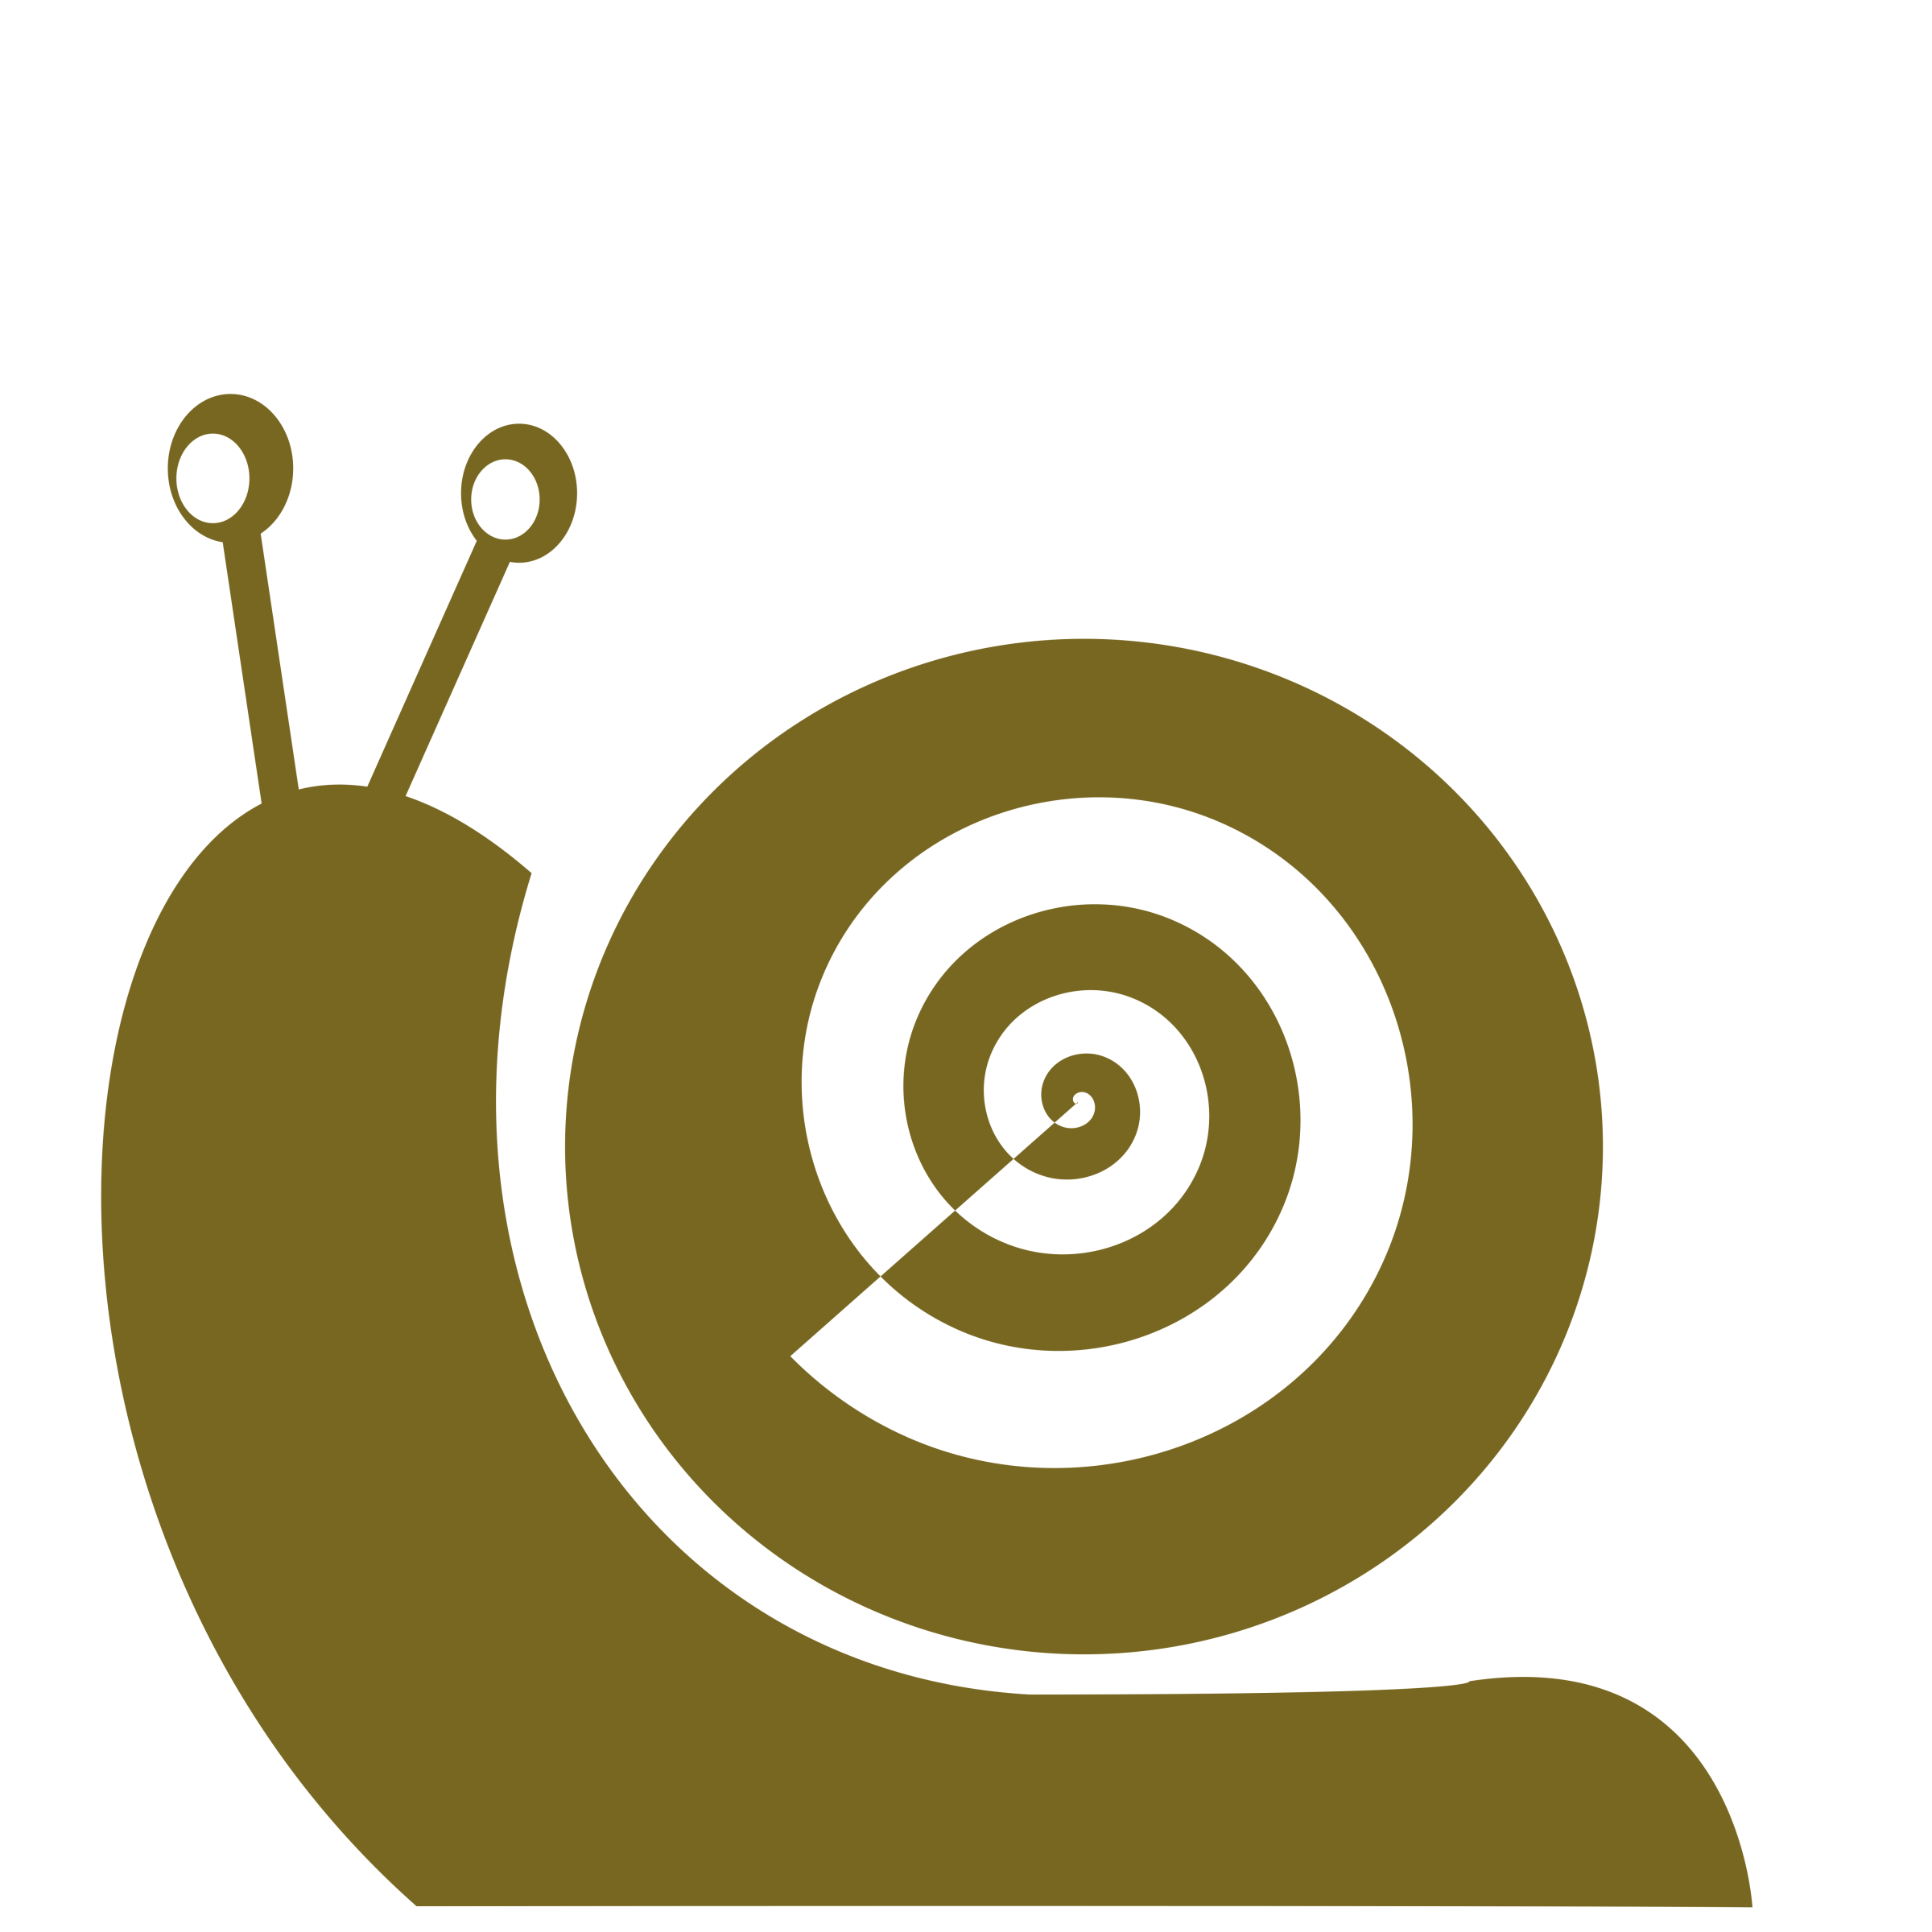 Shell clipart one color. Snail flat icons png